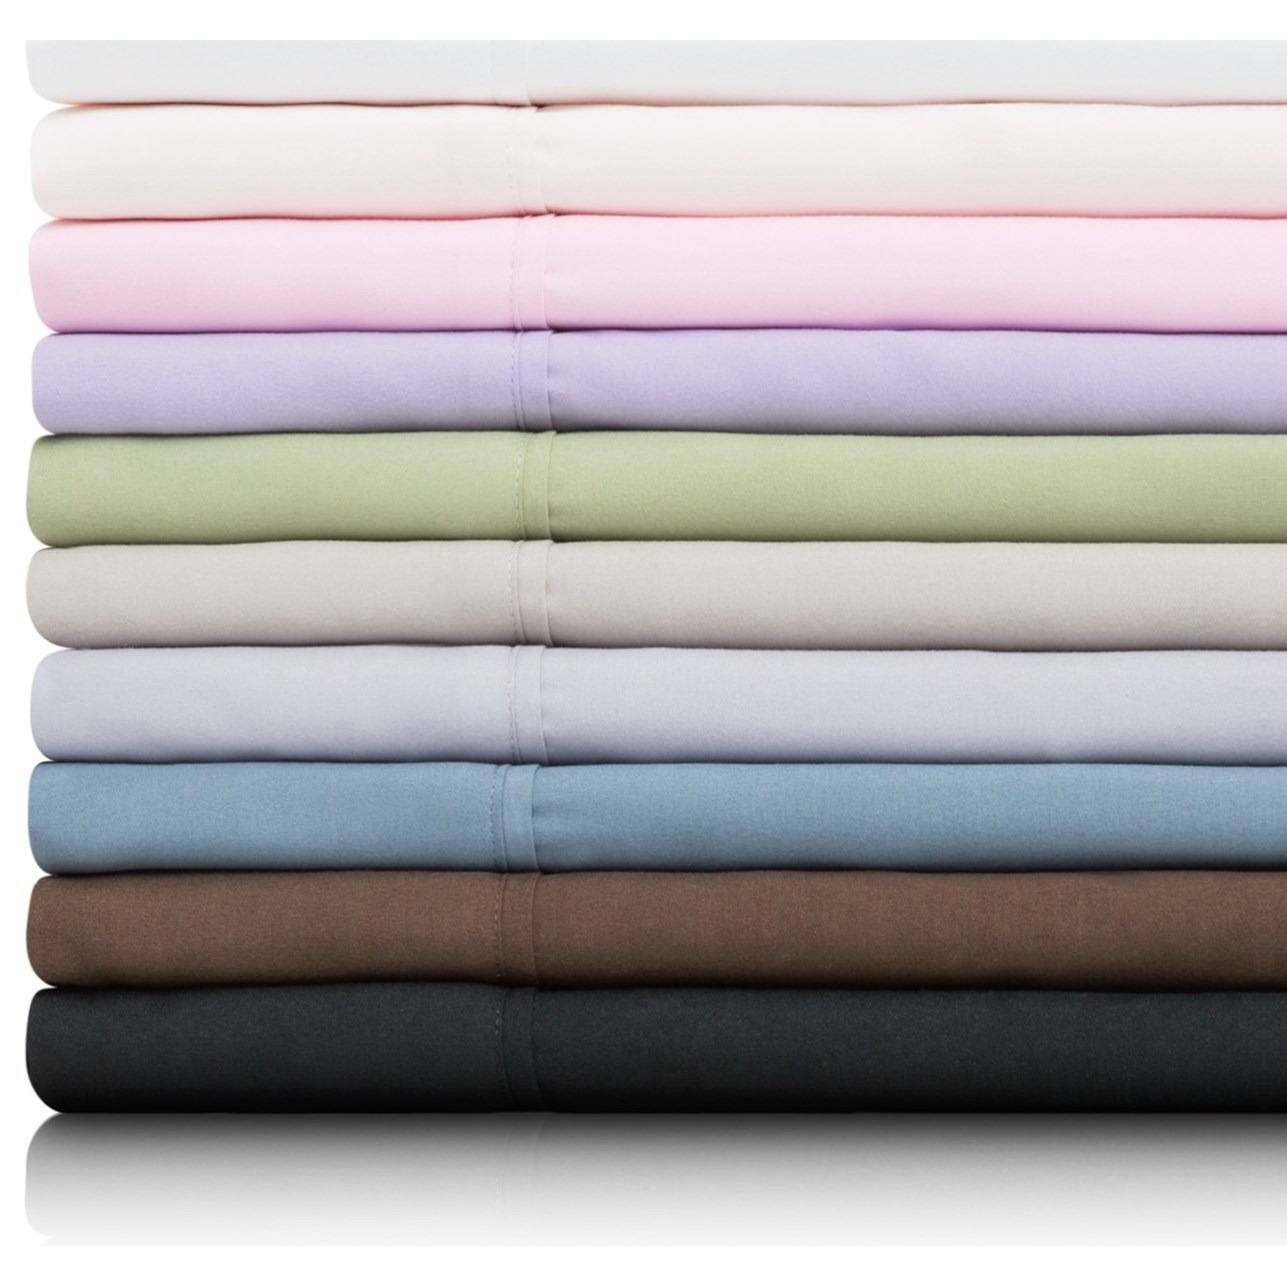 Malouf Brushed Microfiber Queen Woven™ Brushed Microfiber Short Sheet  - Item Number: MA90RQDRMS